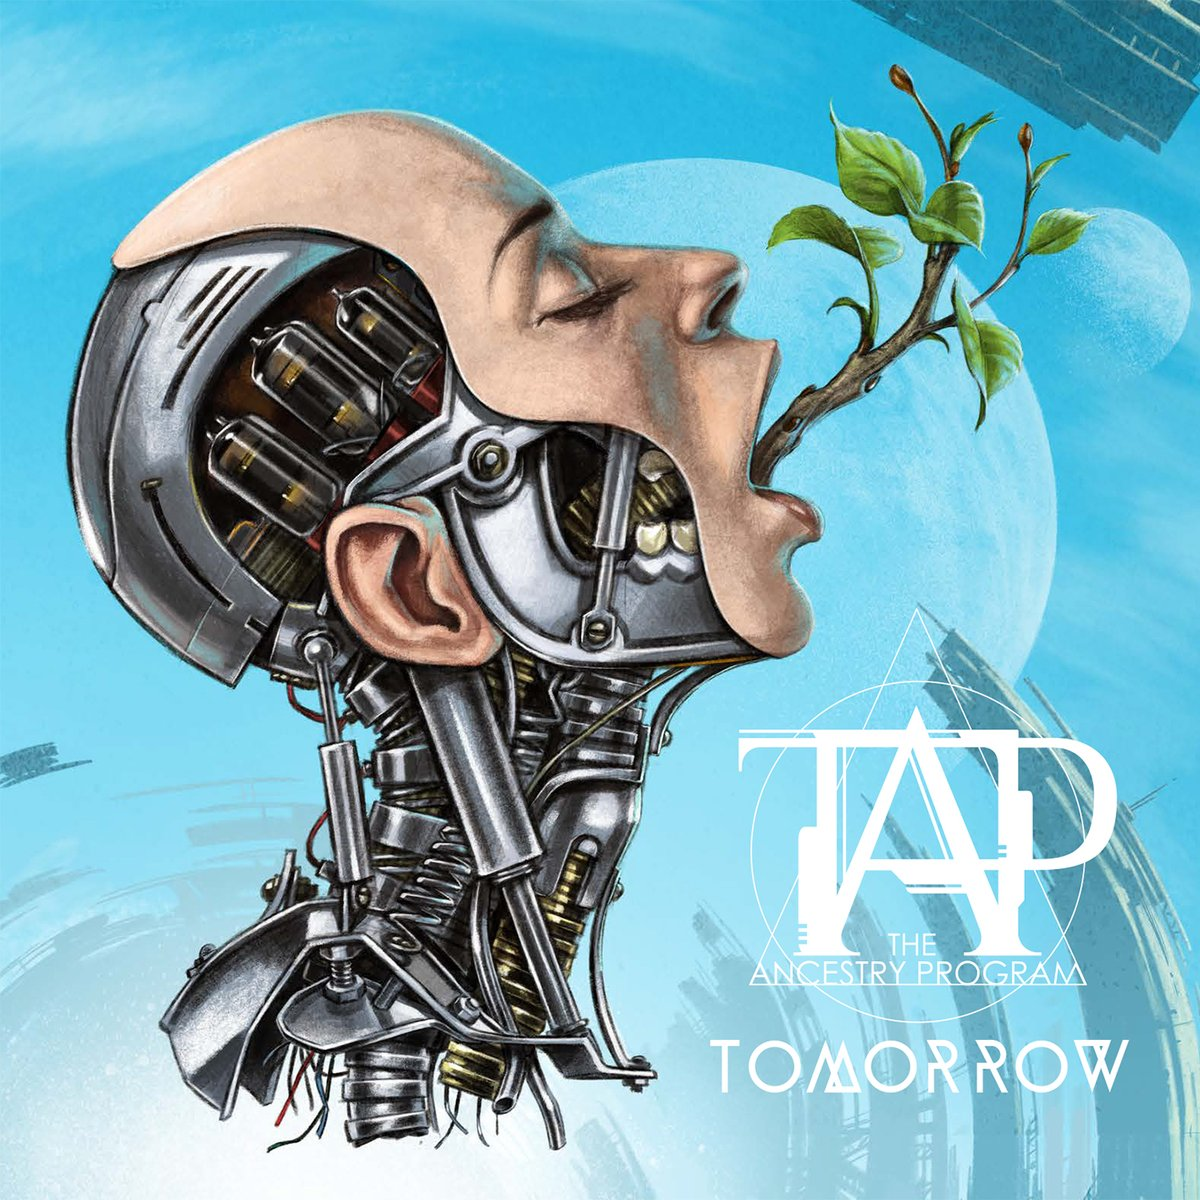 #NowPlaying #Tomorrow - The Ancestry Program http://marinerfm.weebly.com  #progressiverock #progressivemetal pic.twitter.com/eBMuuAfm5S